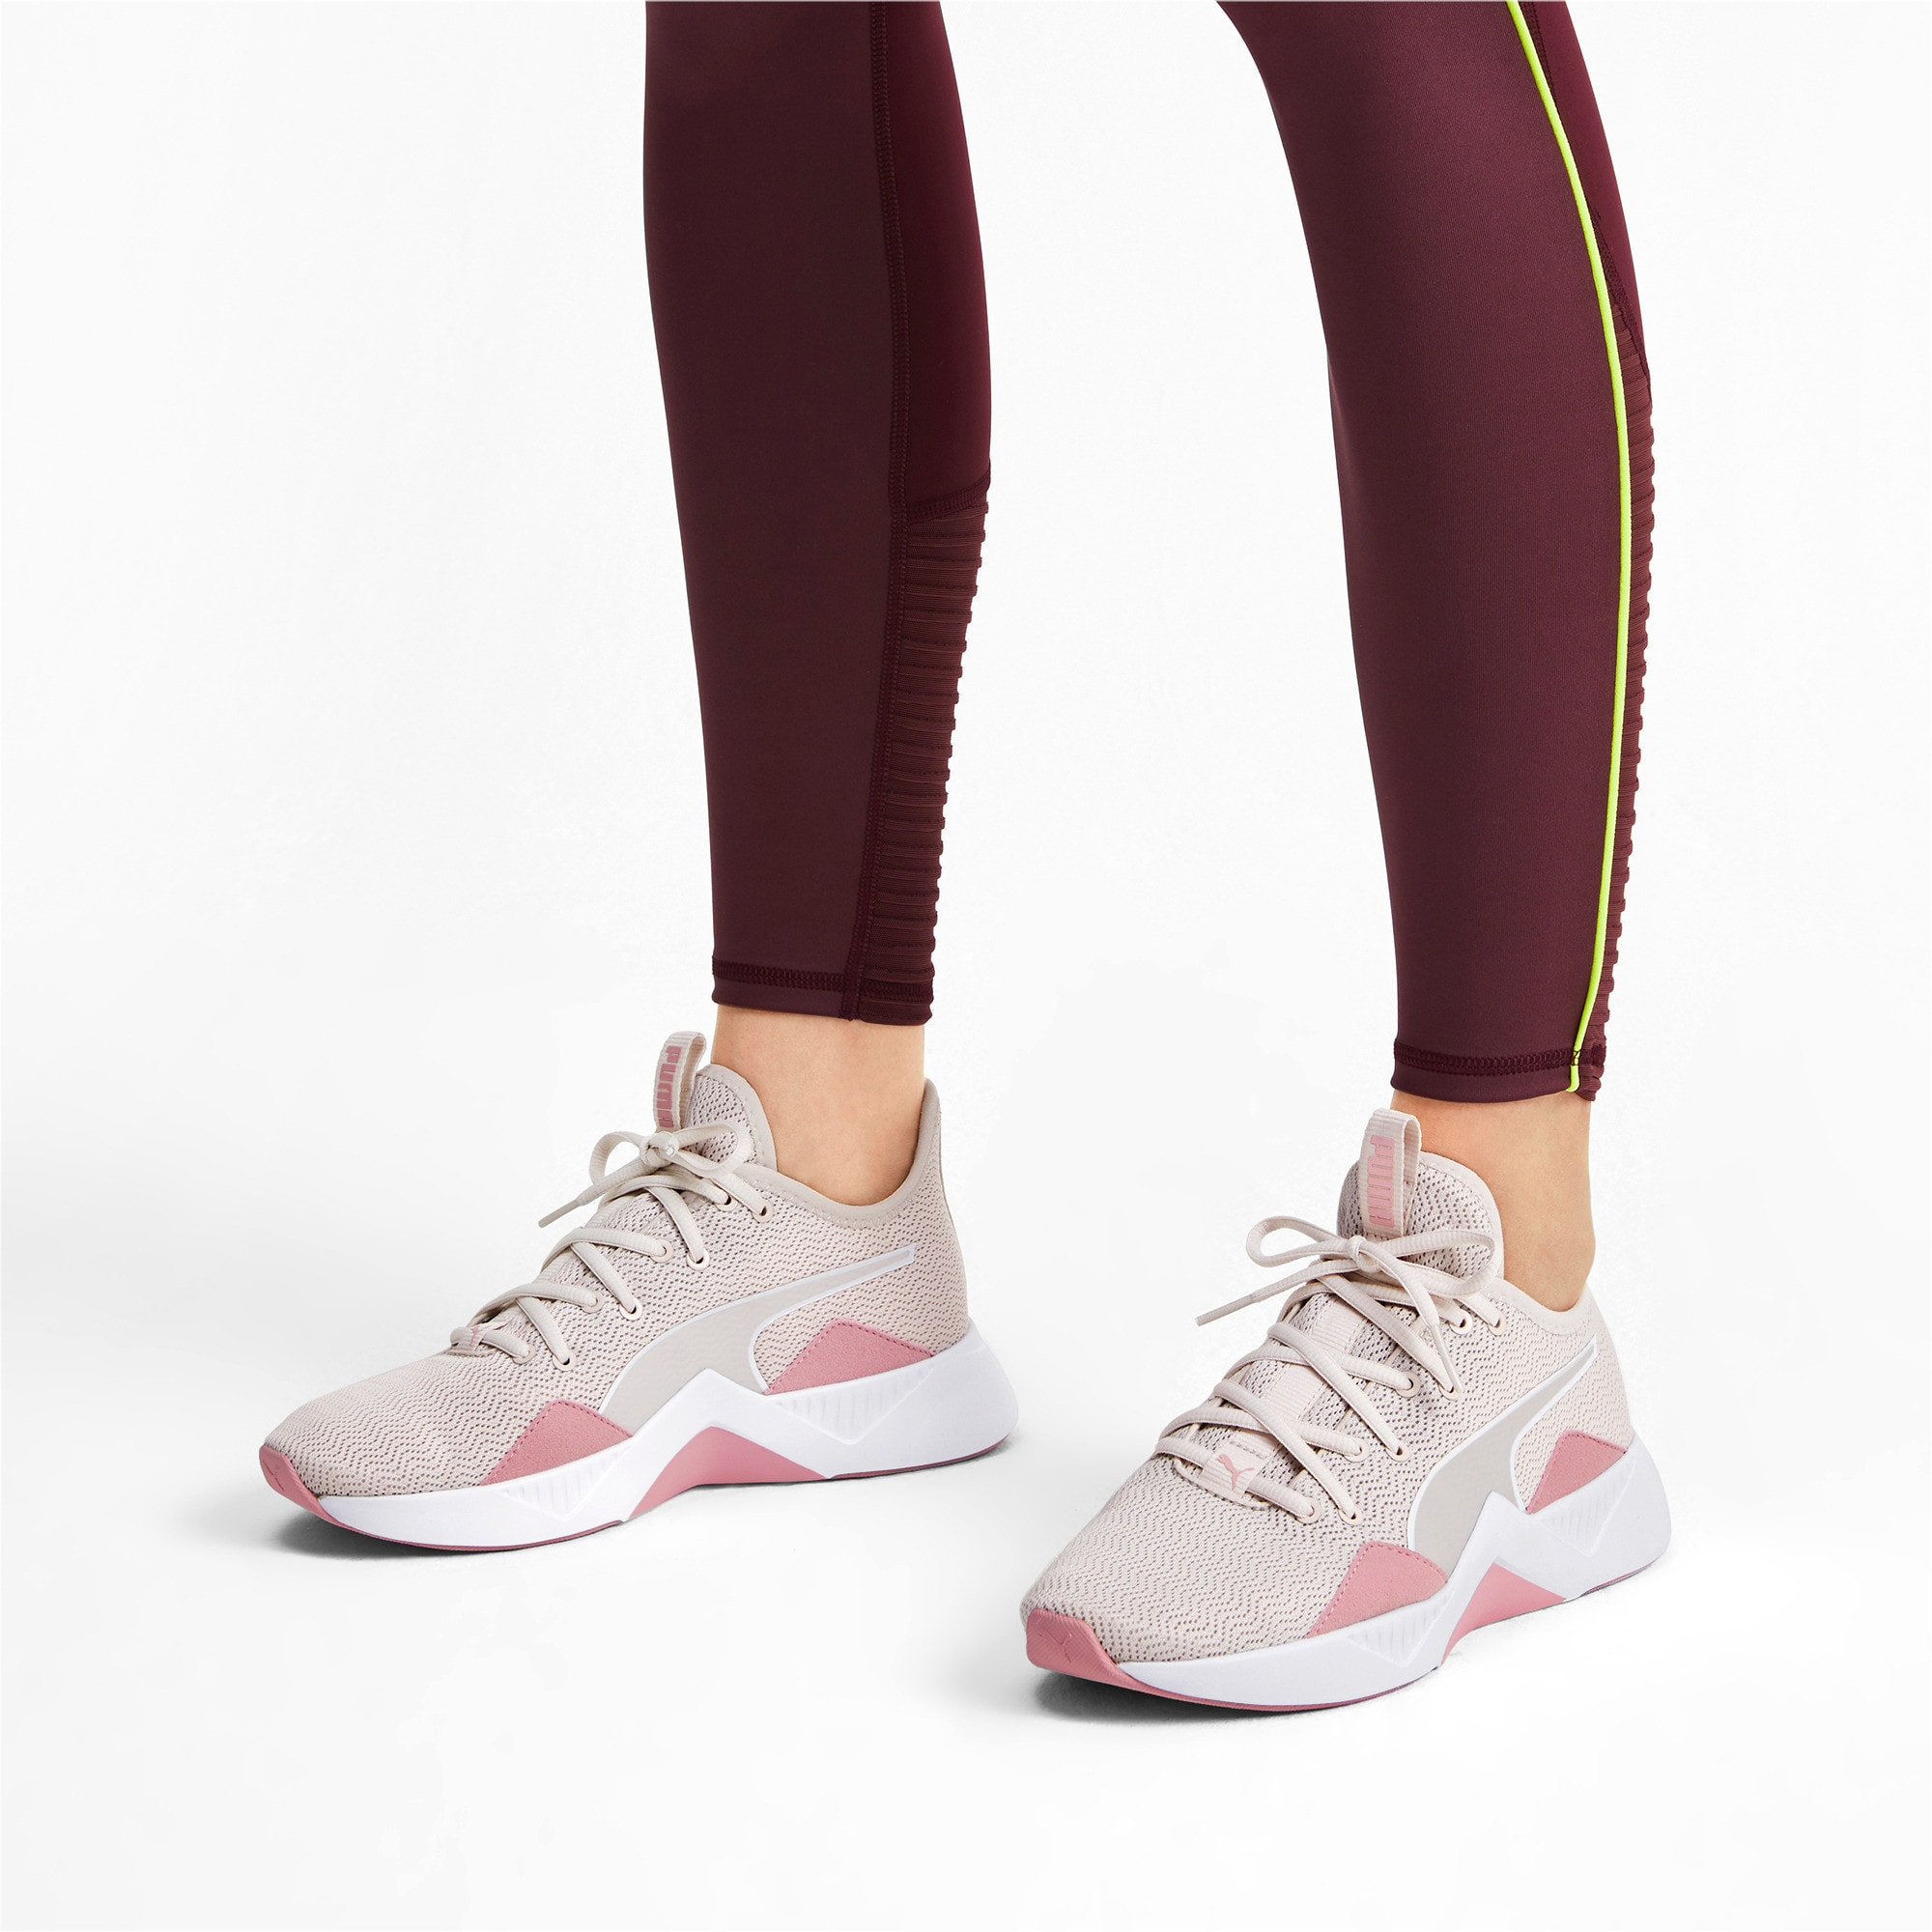 Thumbnail 3 of Incite FS Shift Women's Trainers, Pastel Parchment-Rose-White, medium-IND